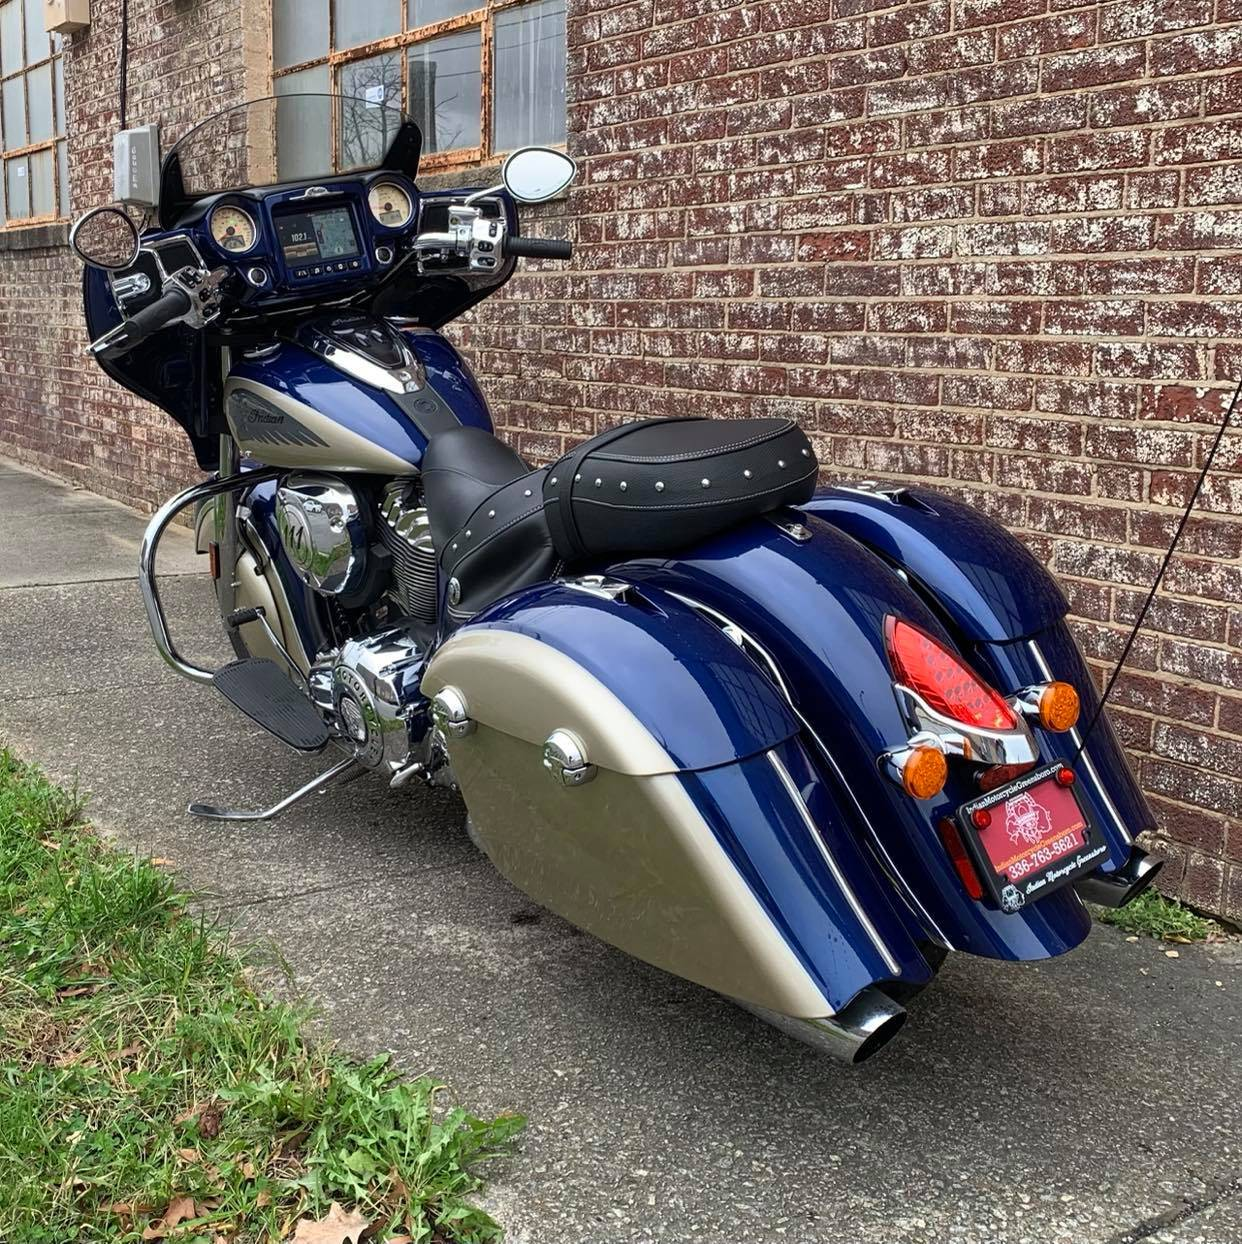 2019 Indian Chieftain® Classic ABS in Greensboro, North Carolina - Photo 5